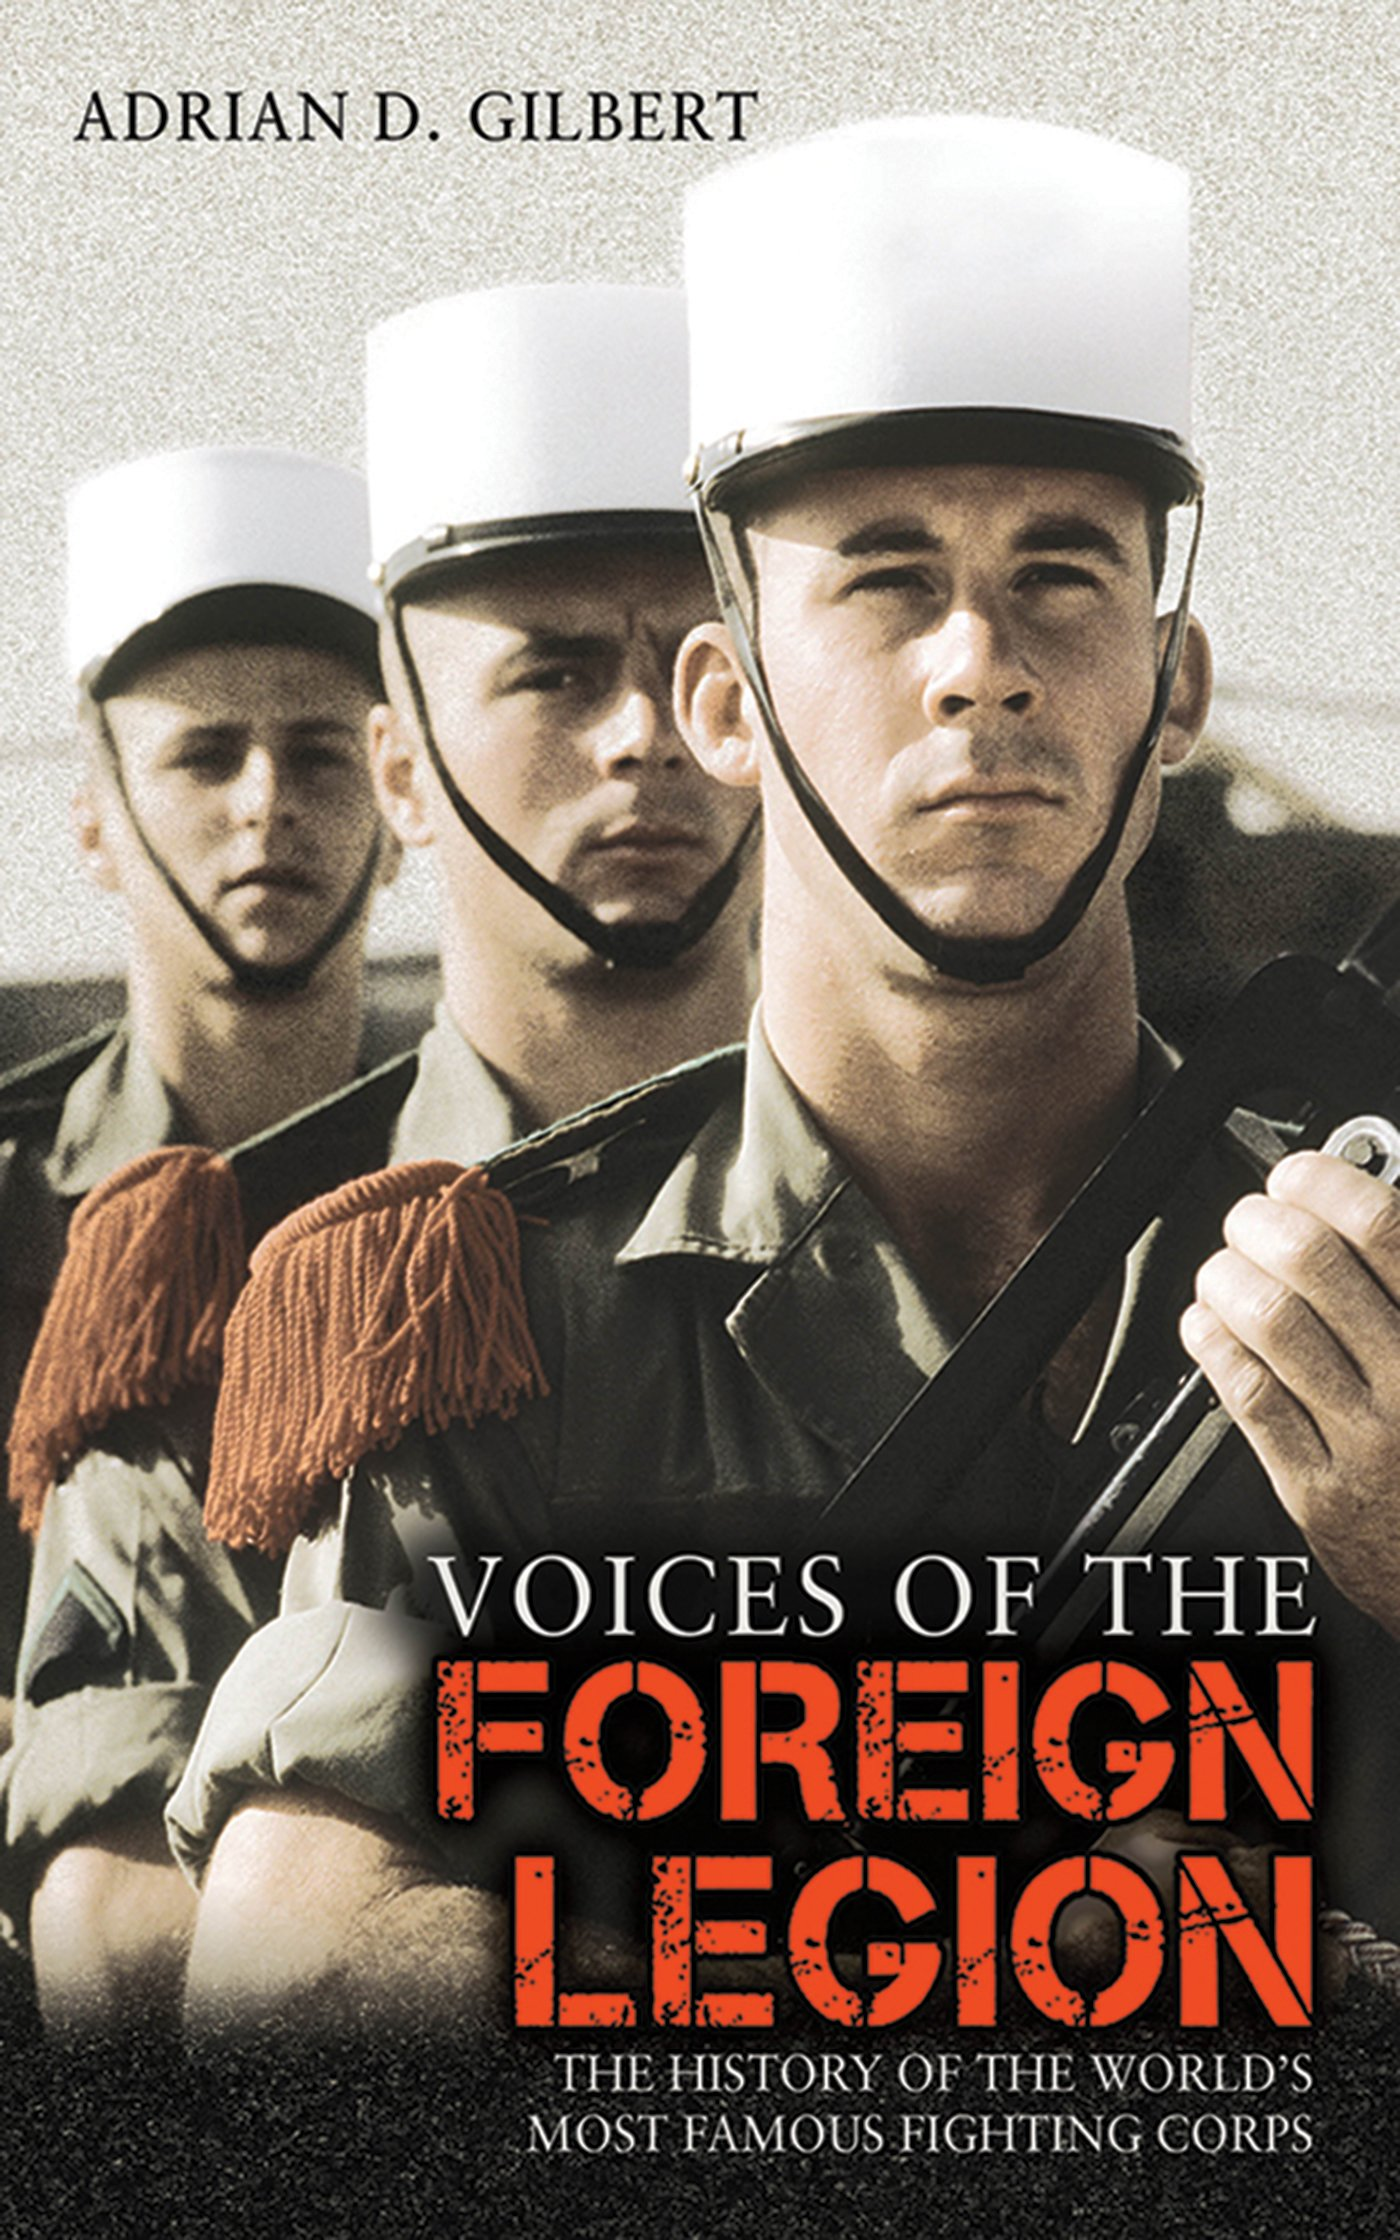 Voices of the Foreign Legion: The History of the World's Most Famous Fighting Corps PDF